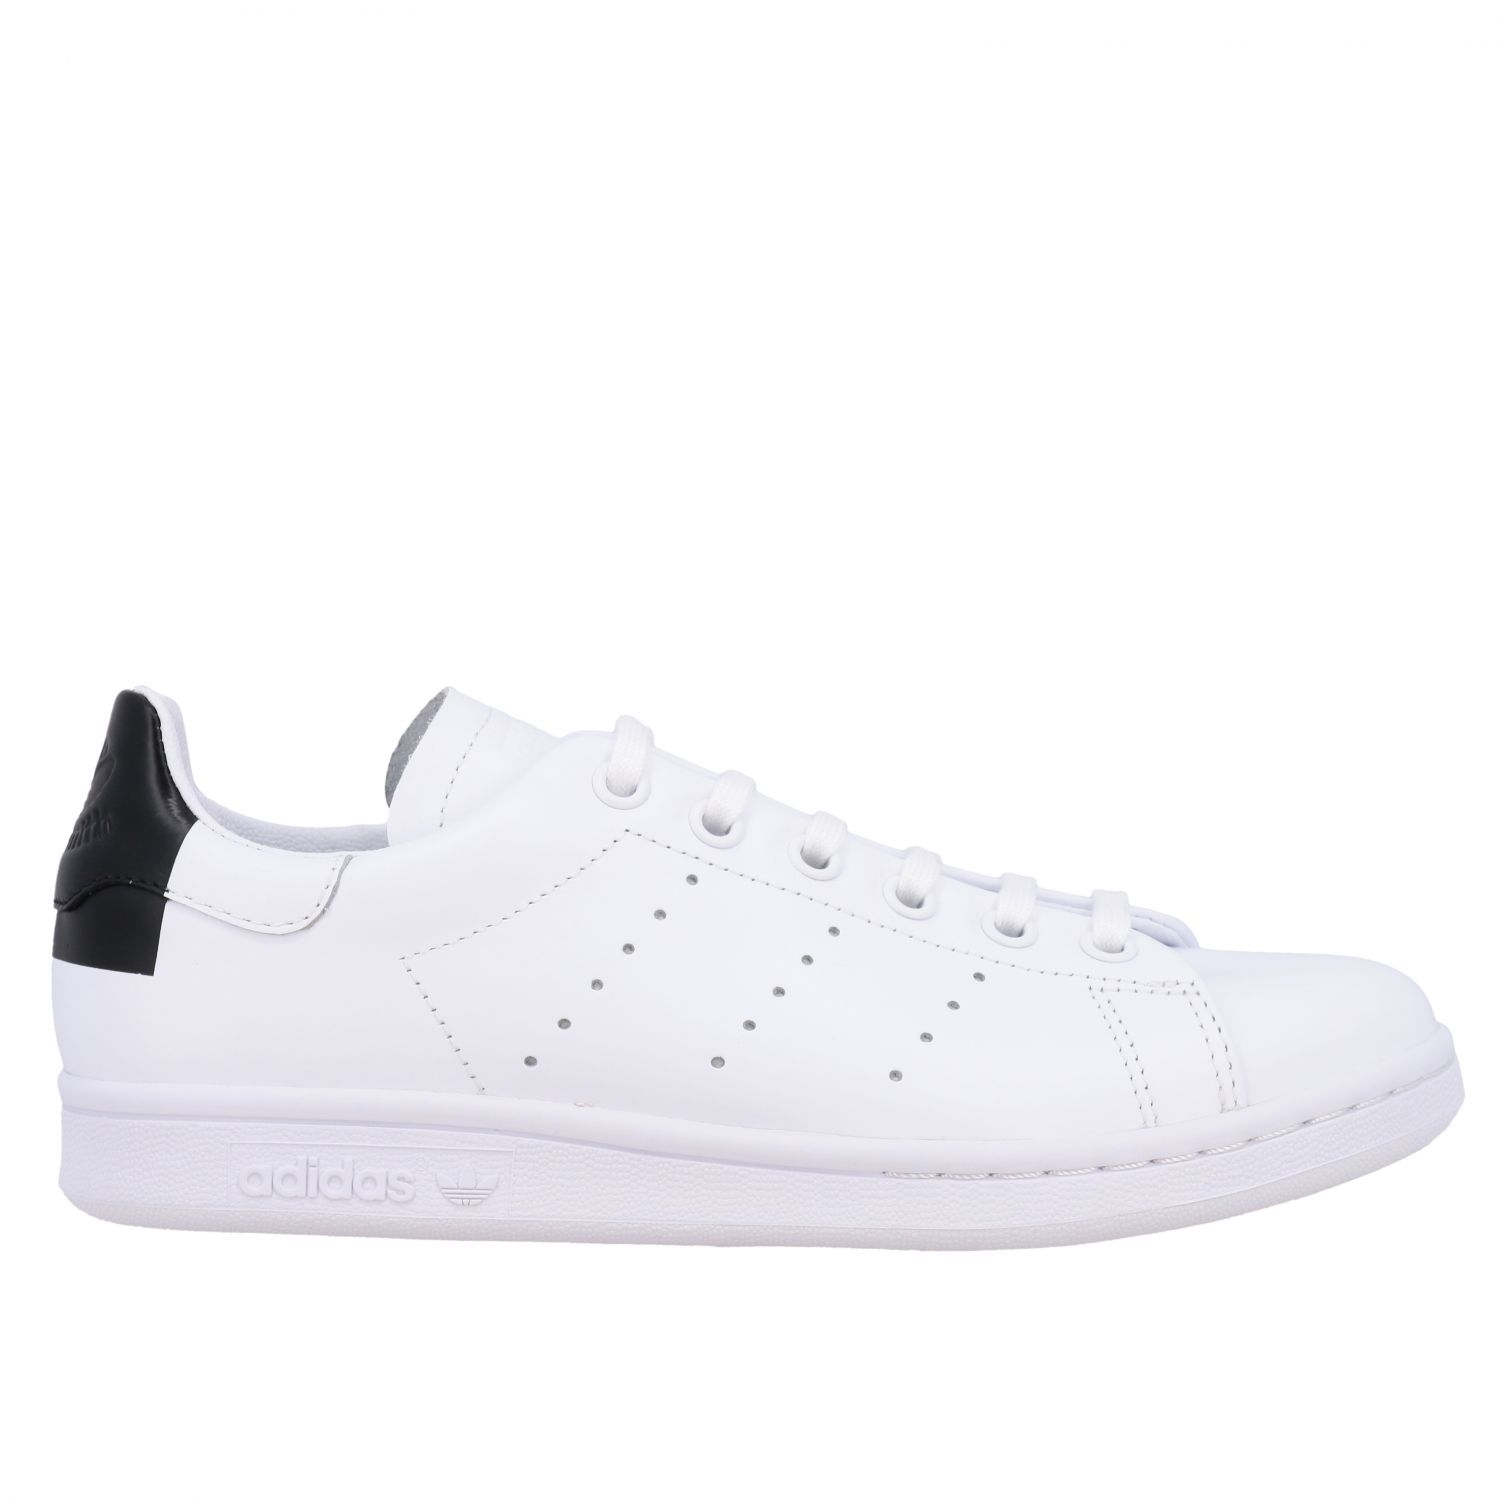 Sneakers Adidas Originals: Shoes women Adidas Originals white 1